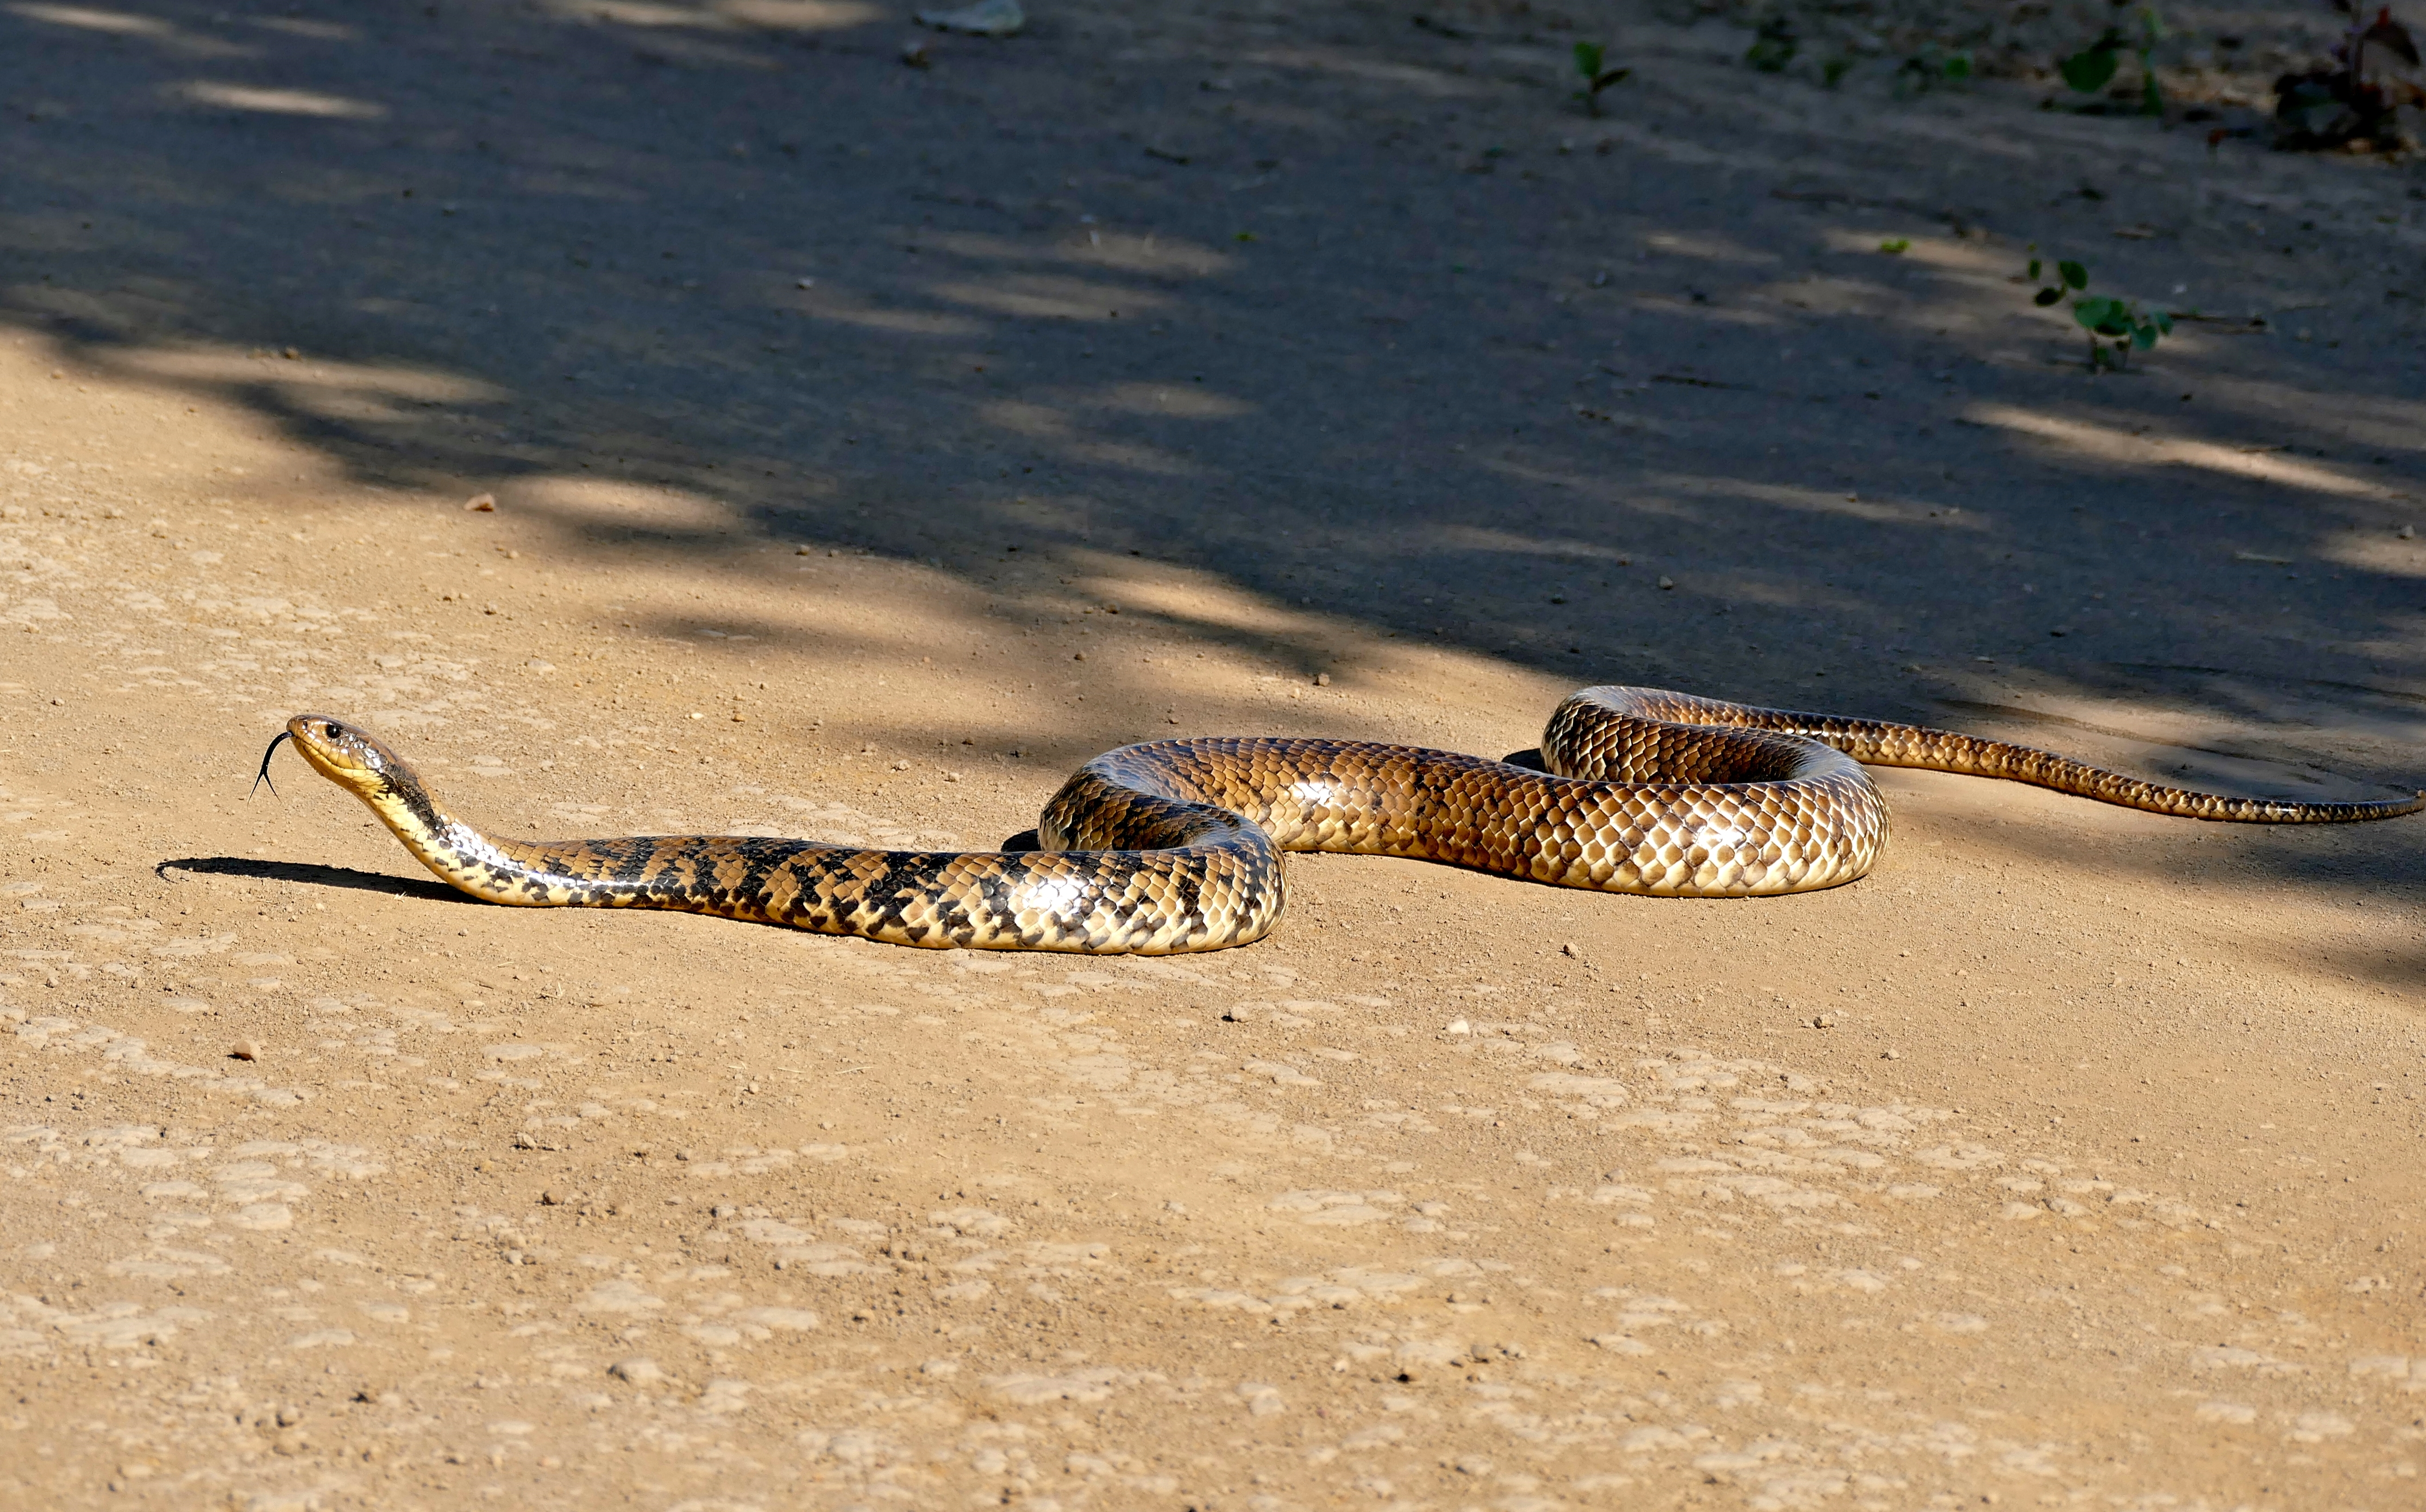 Image of False water snake